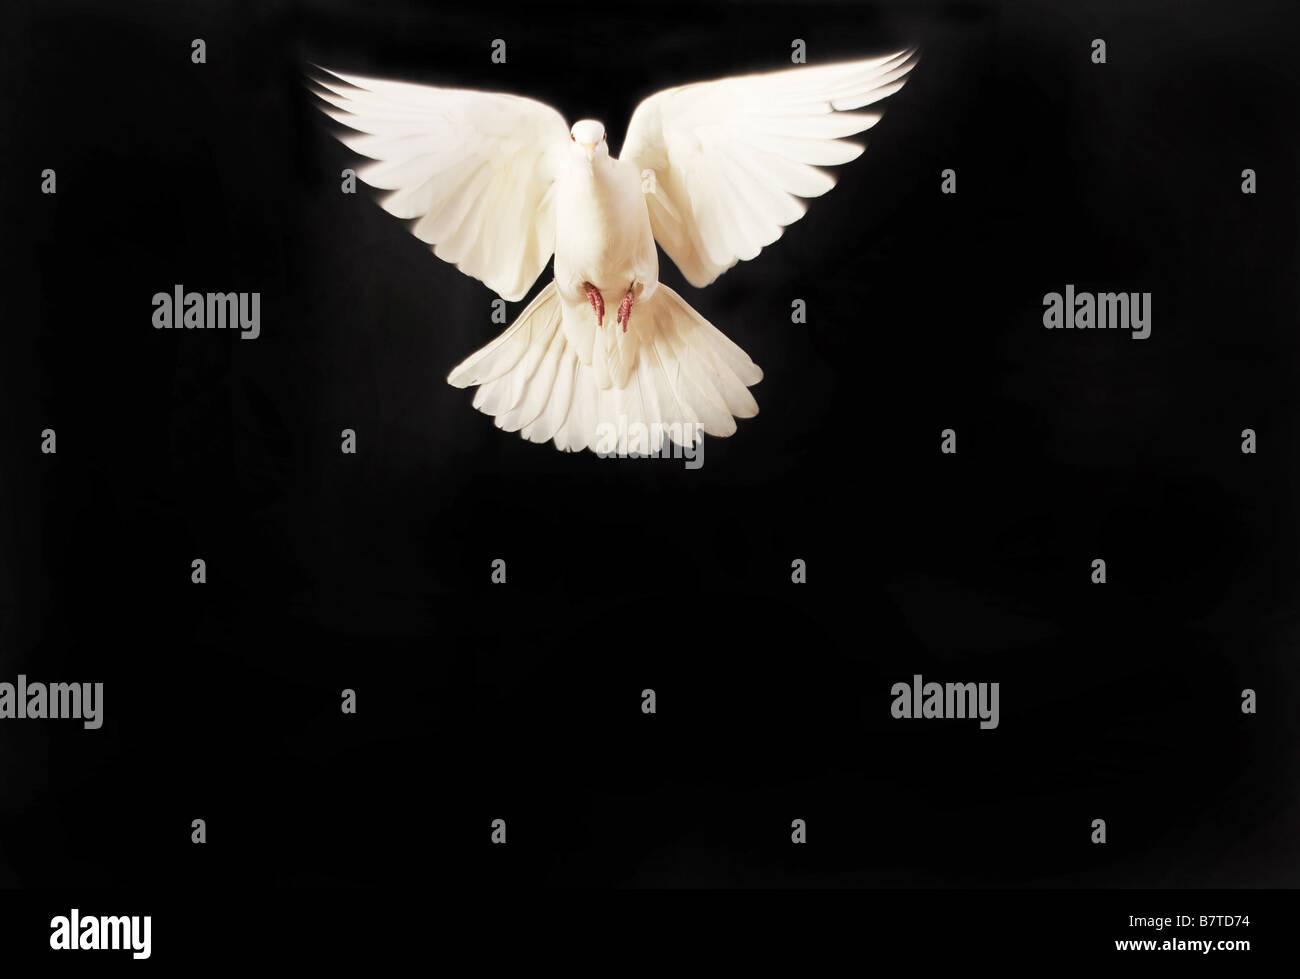 flying white dove isolated on black - Stock Image